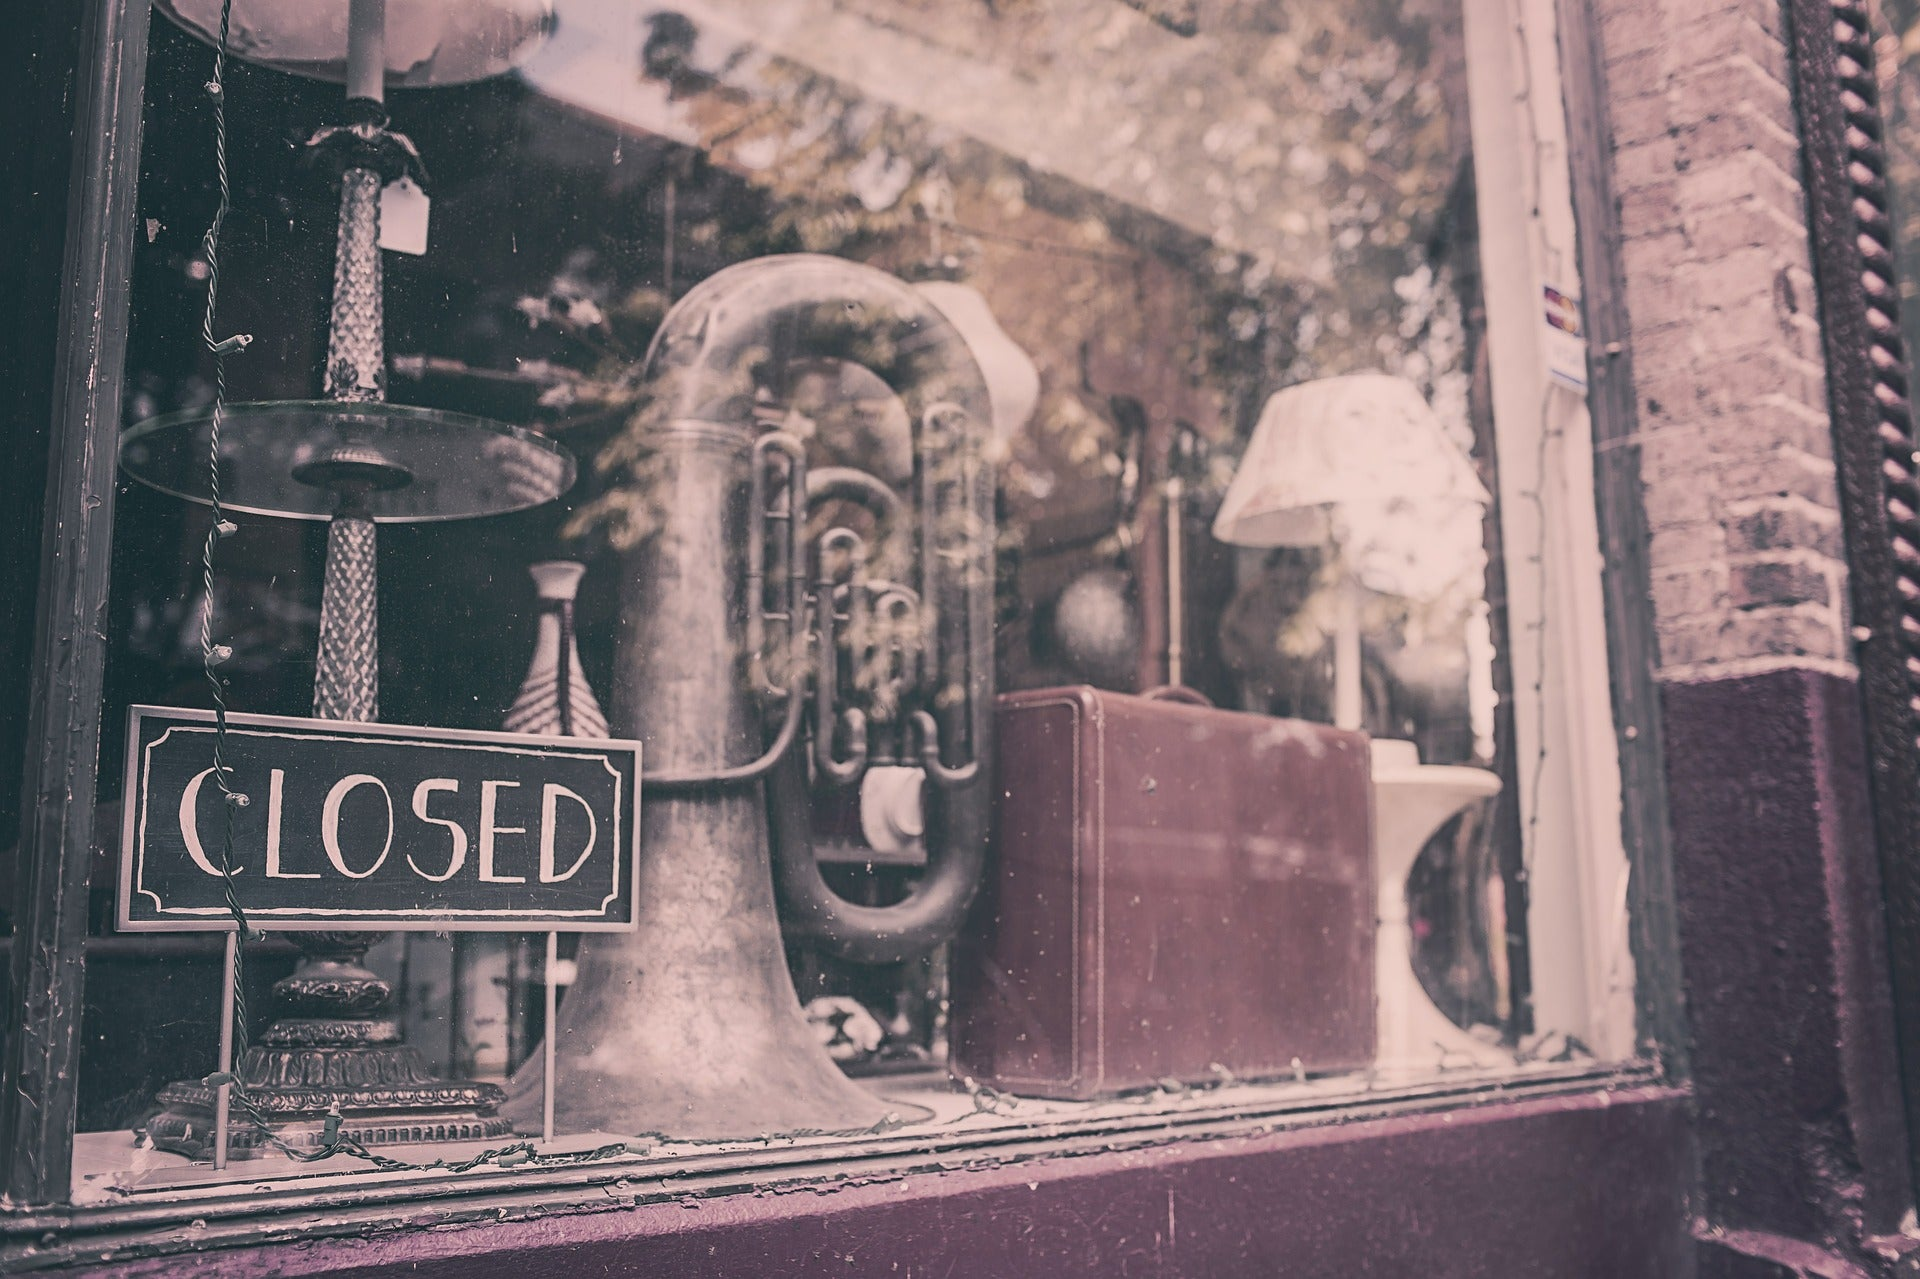 Closed up storefront